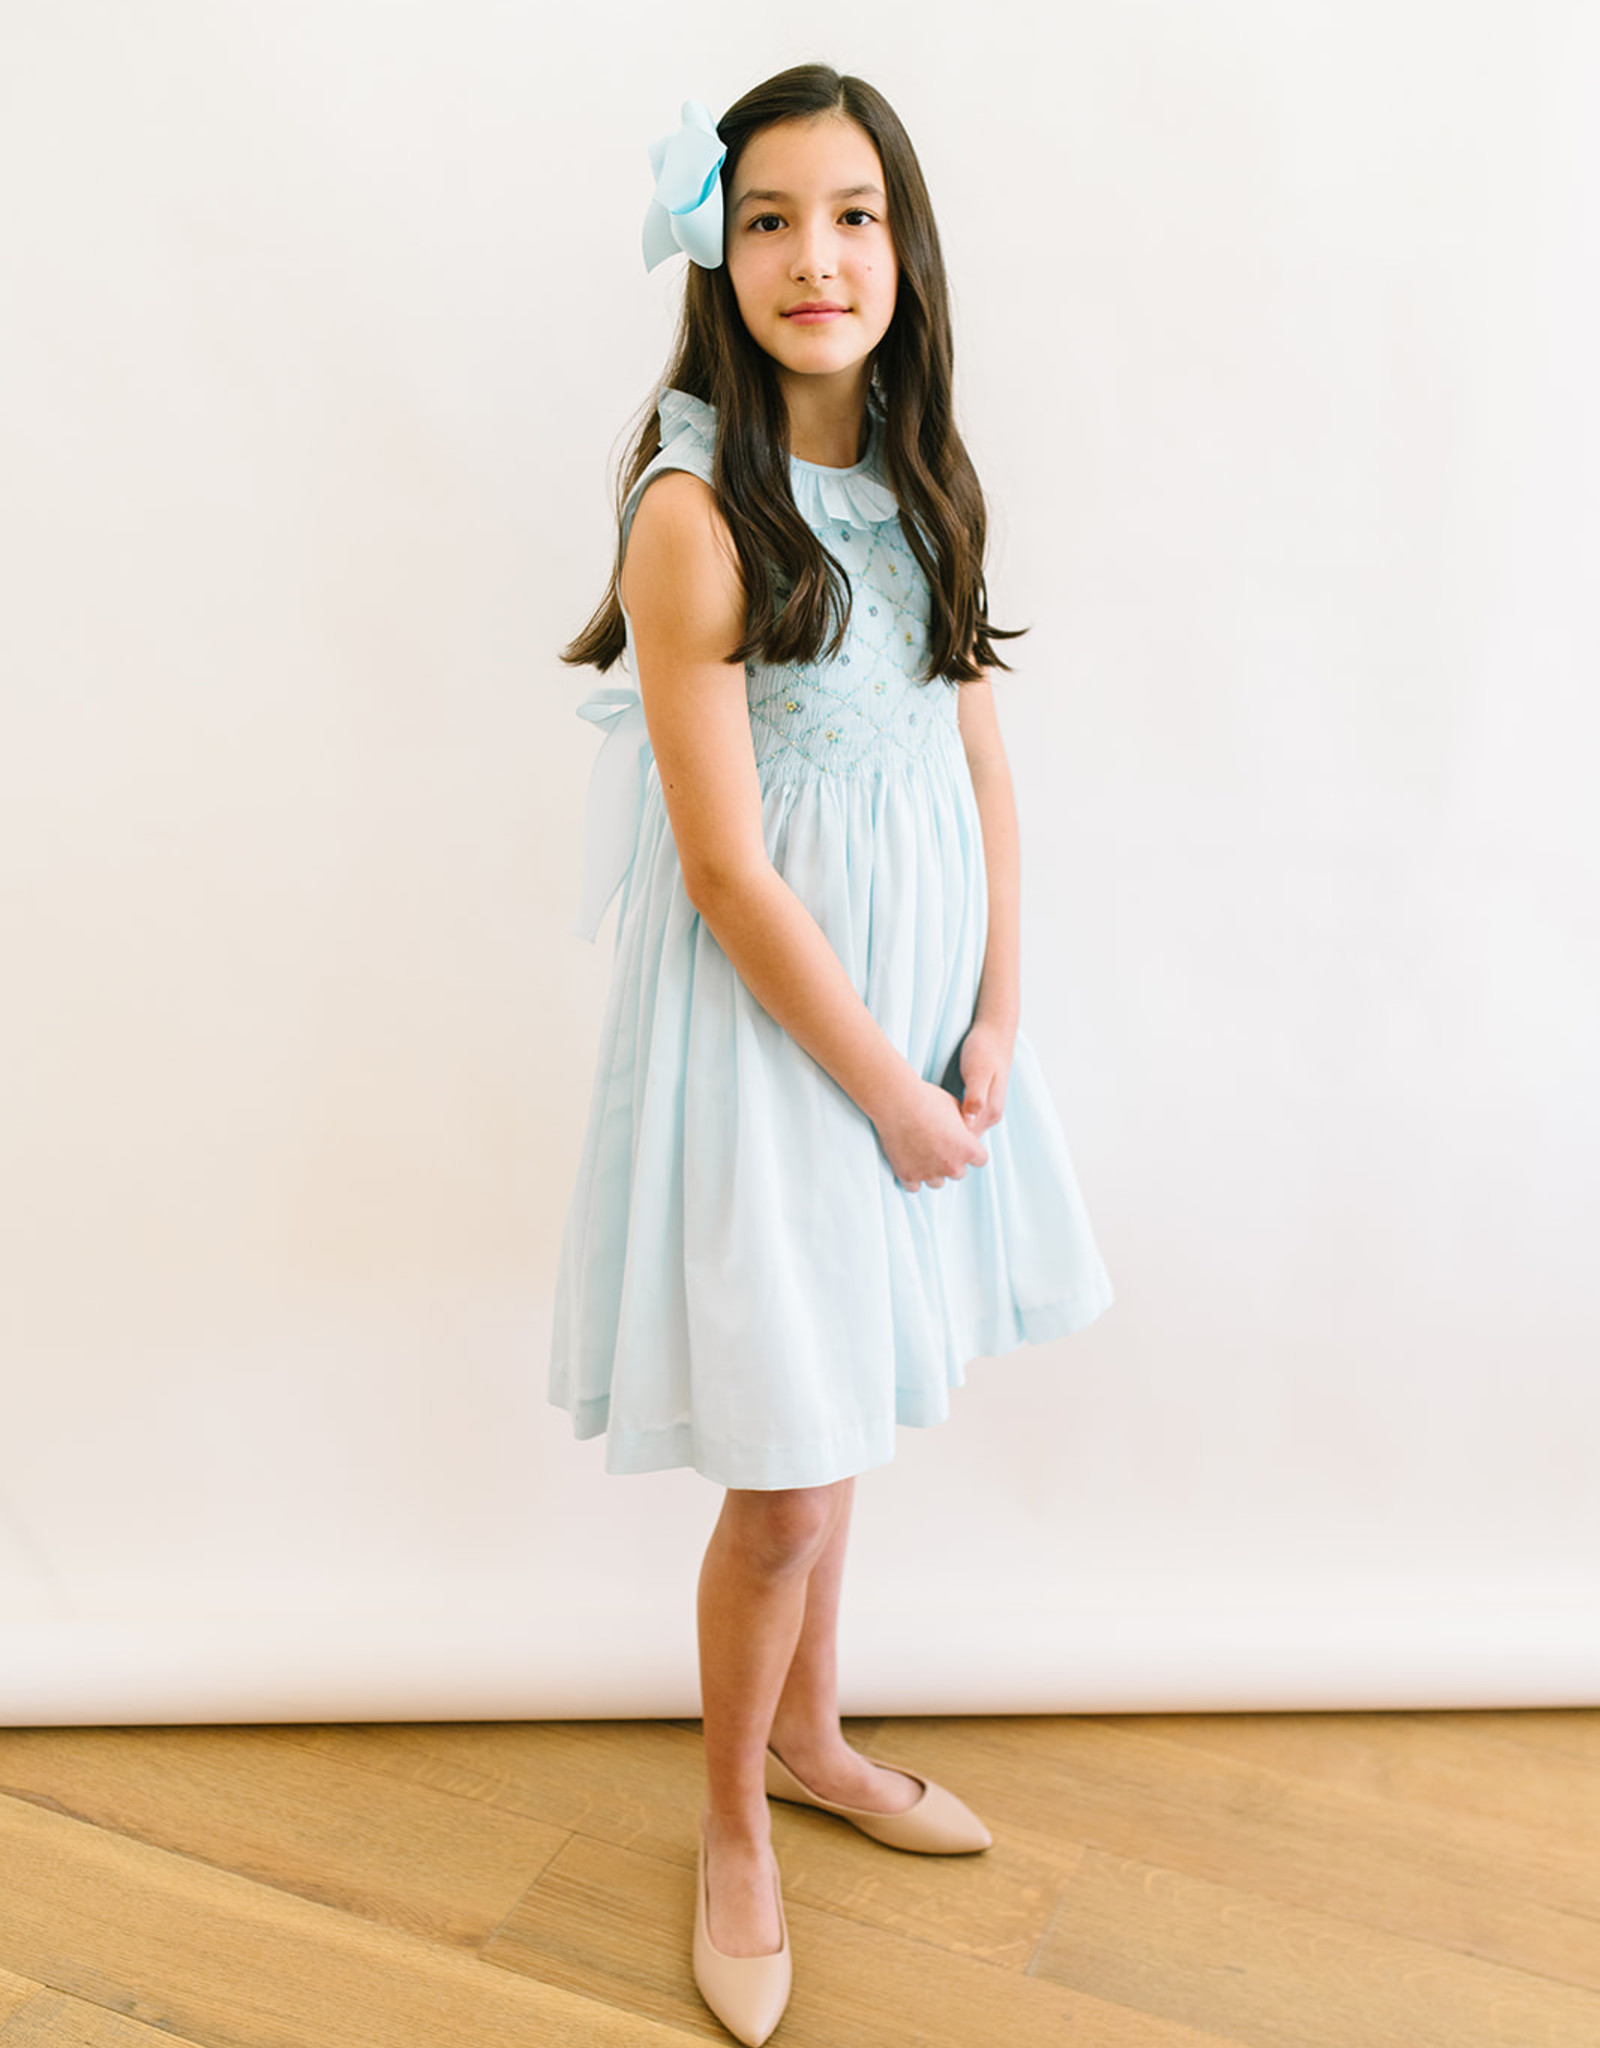 Luli Solid Blue Voile Dress with Lattice Smocking 7043